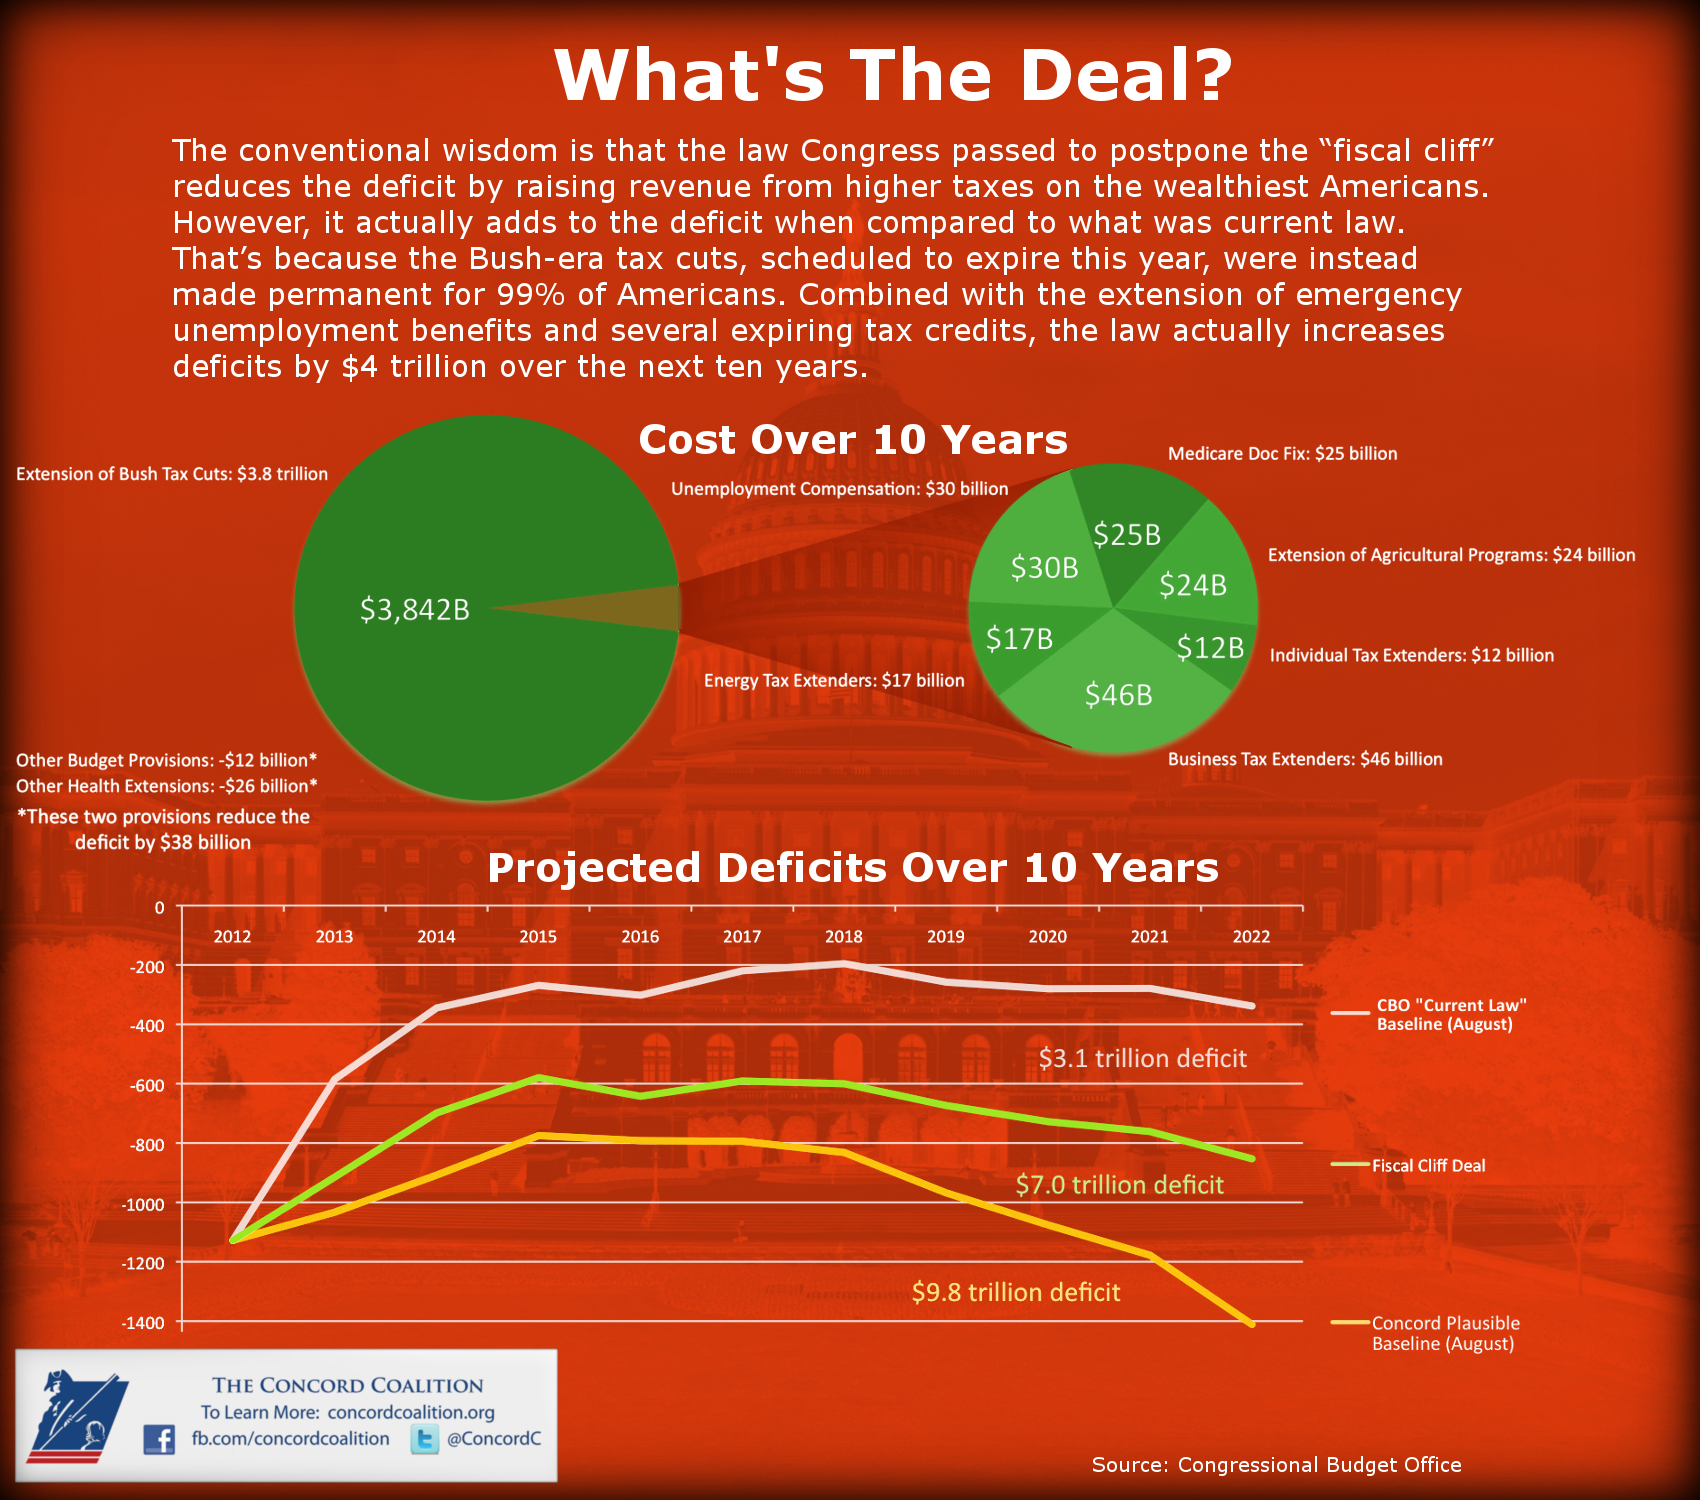 What's the deal? Congress postponed the fiscal cliff but raised the deficit.